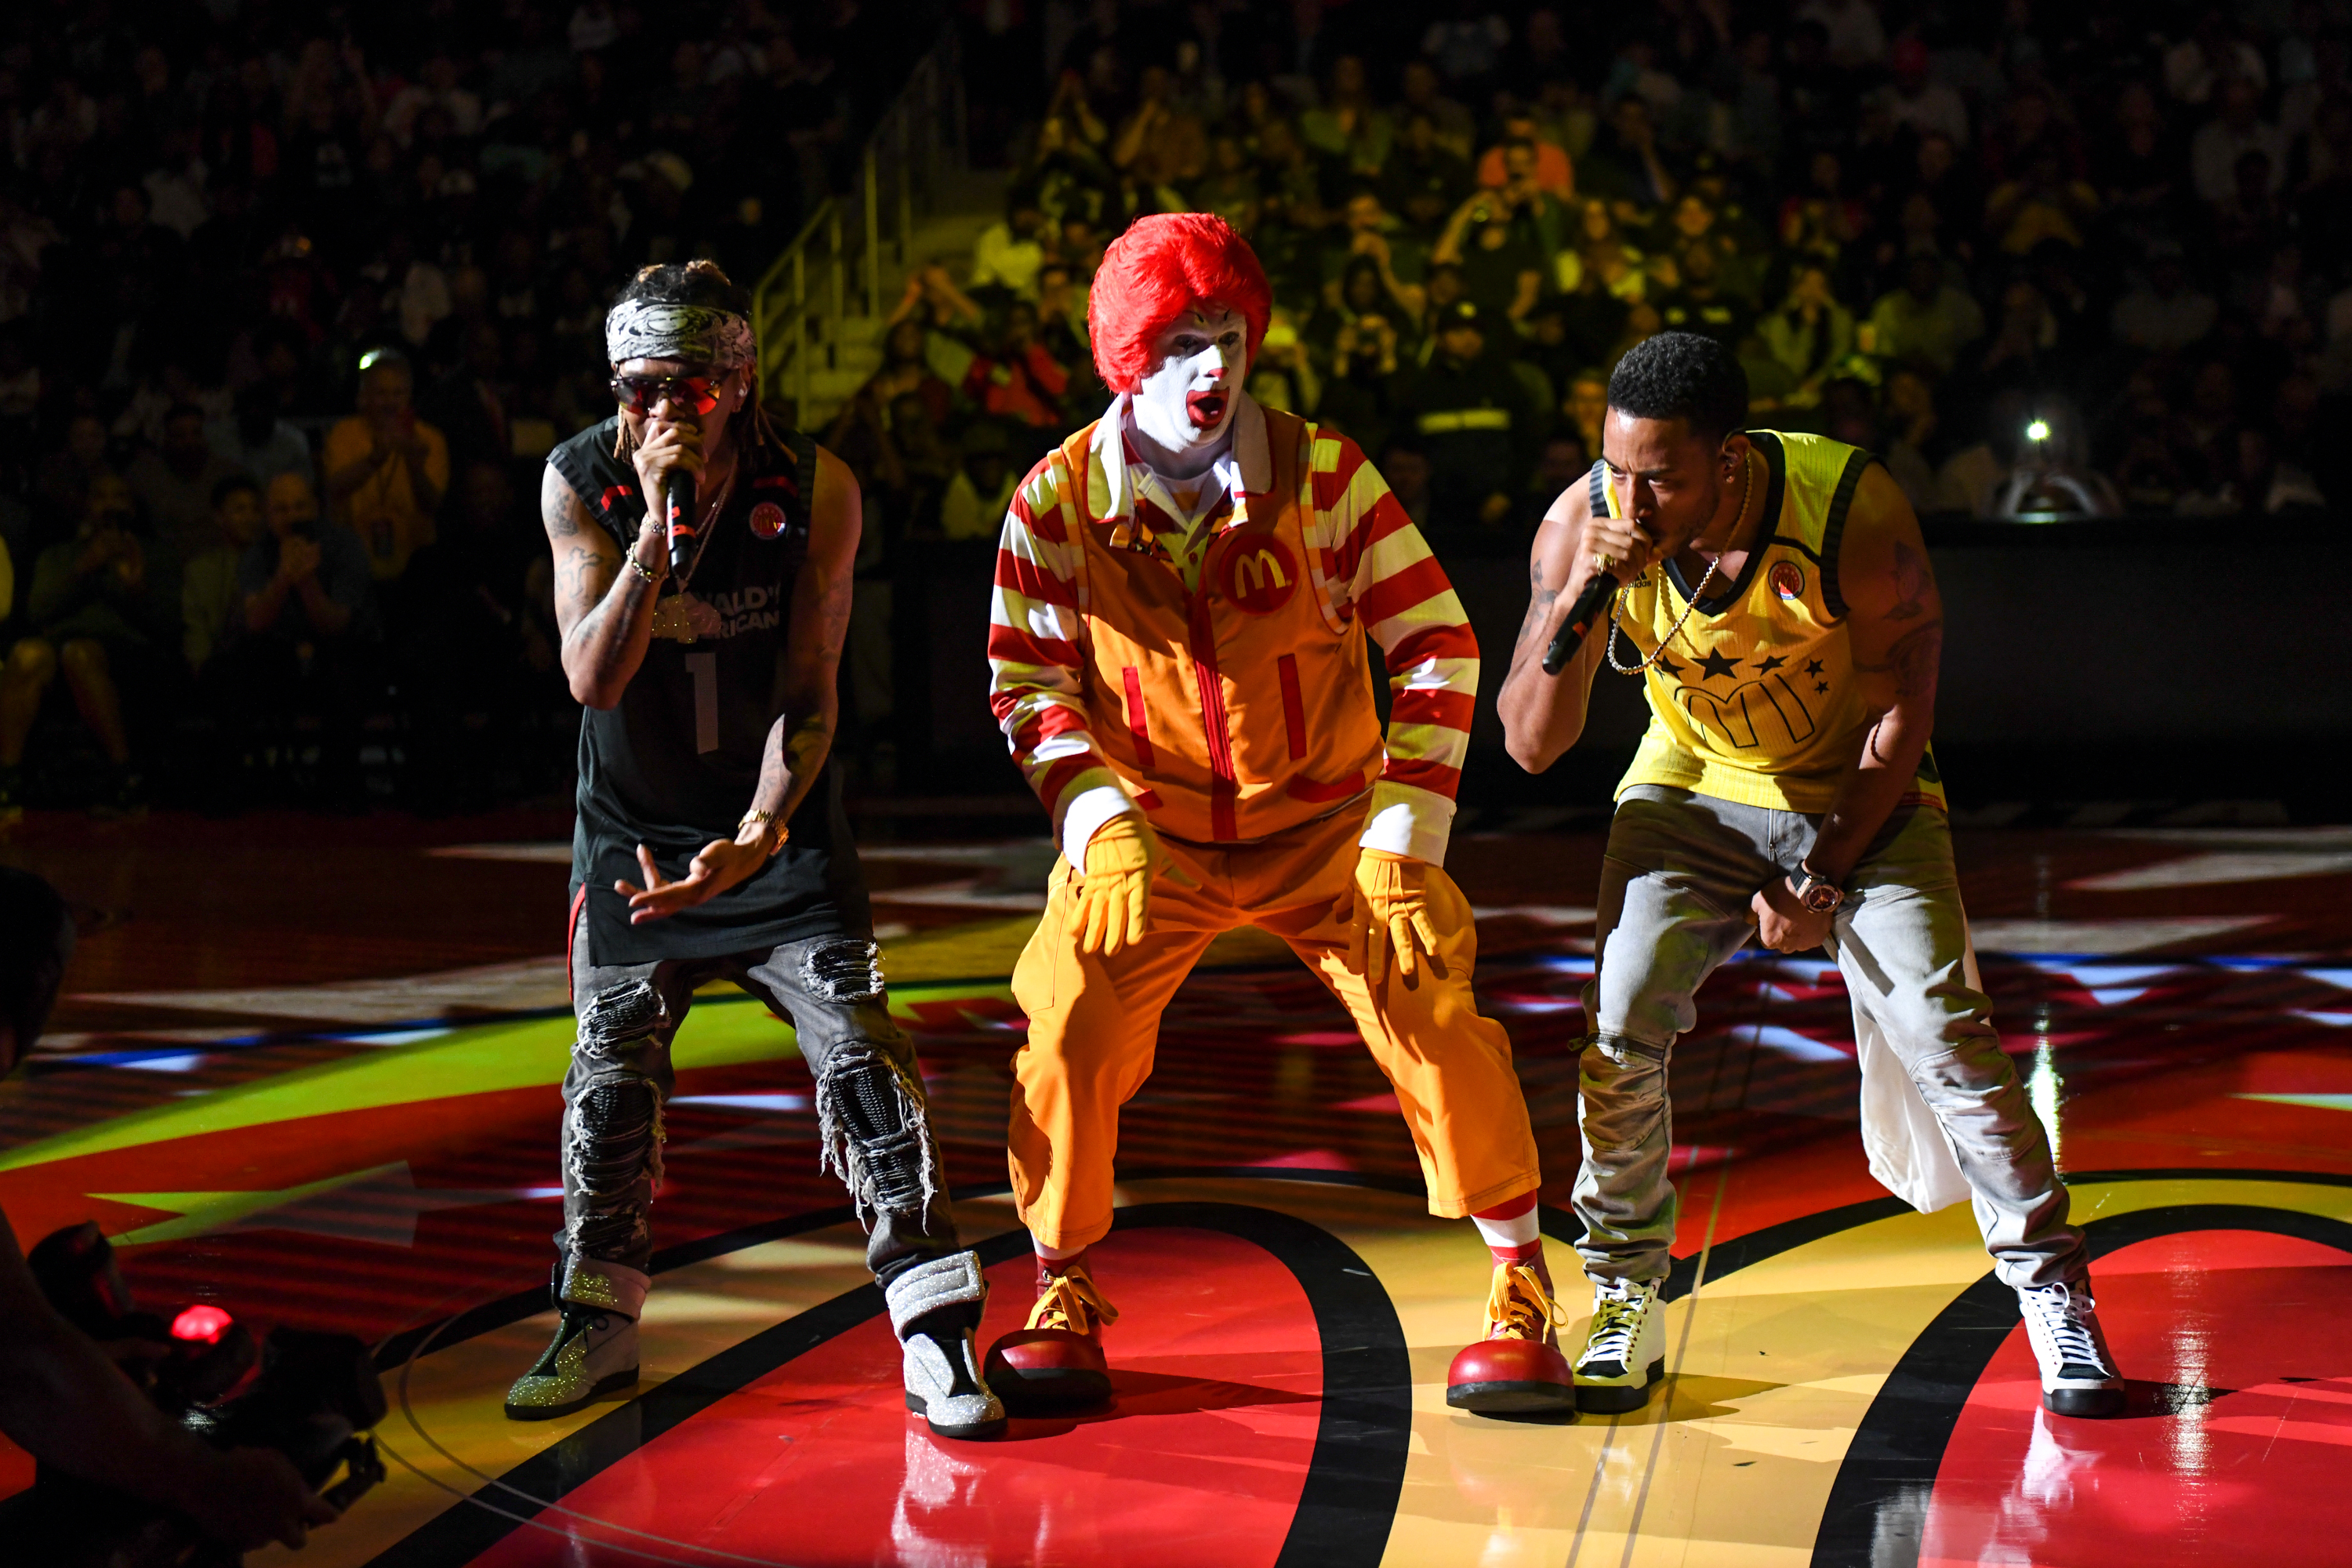 Ludacris and Ronald McDonald perform at the 2018 McDonald's All American Games at Philips Arena in Atlanta, Georgia on March 28, 2018